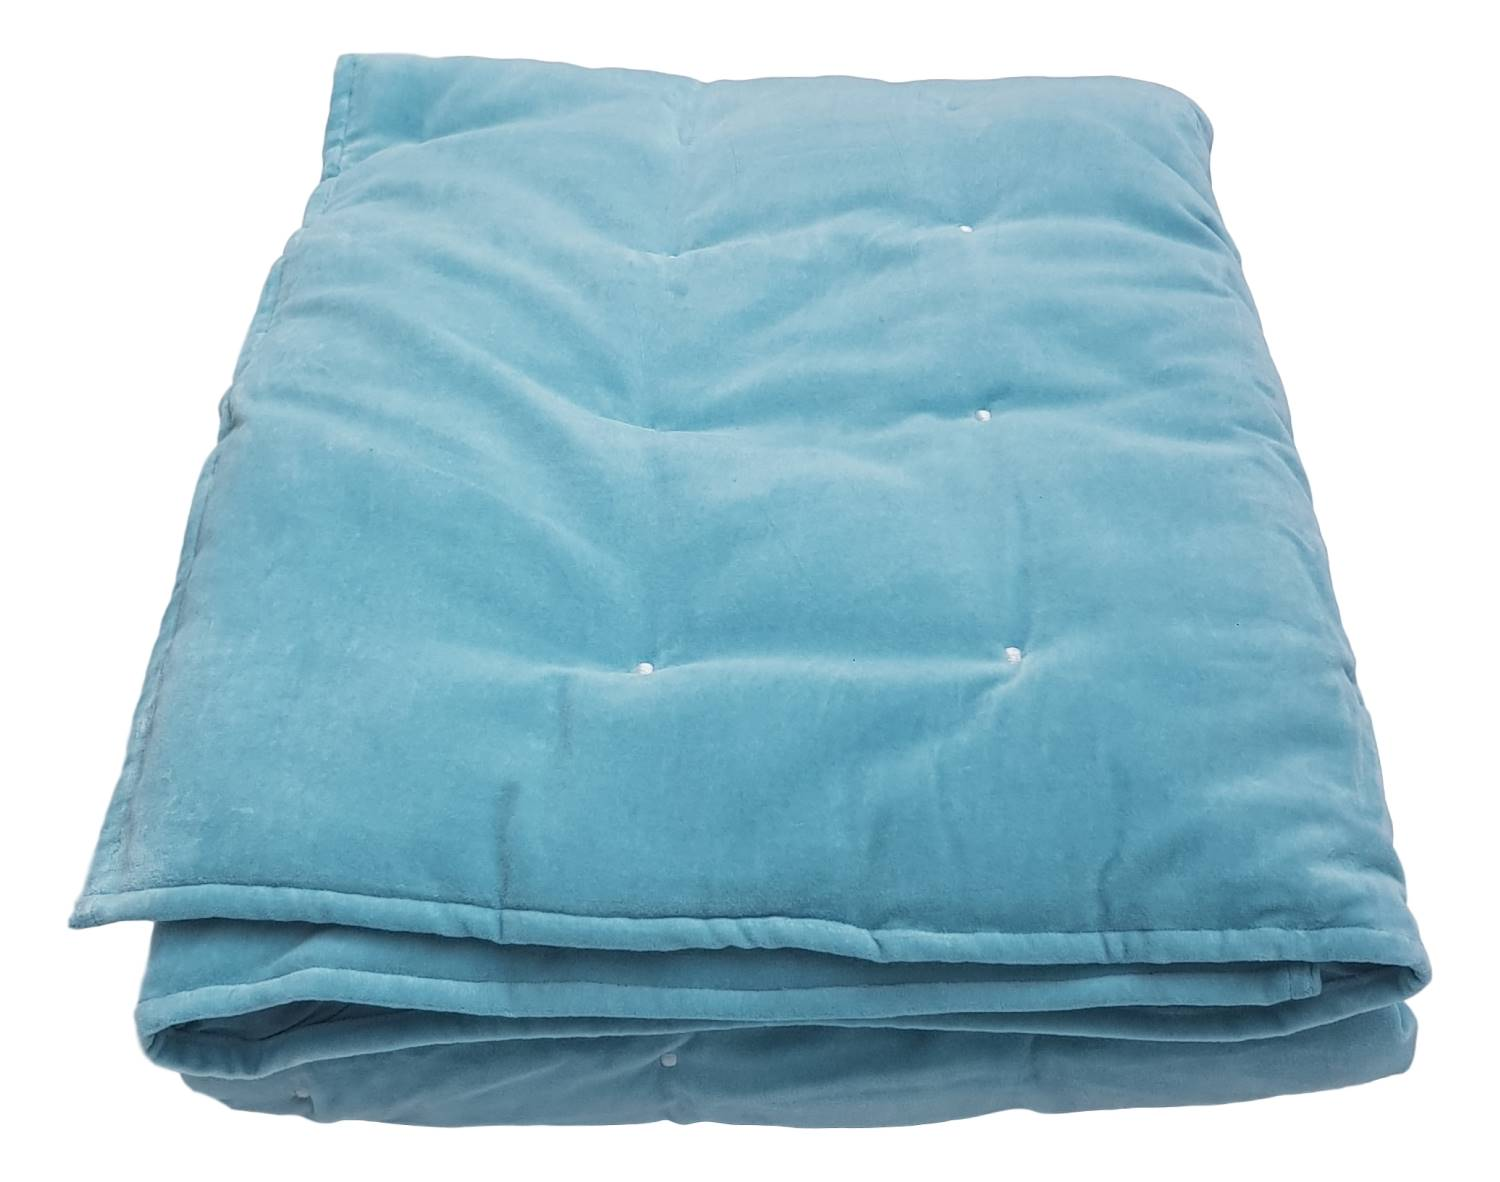 Duck Egg Blue Velvet Blanket